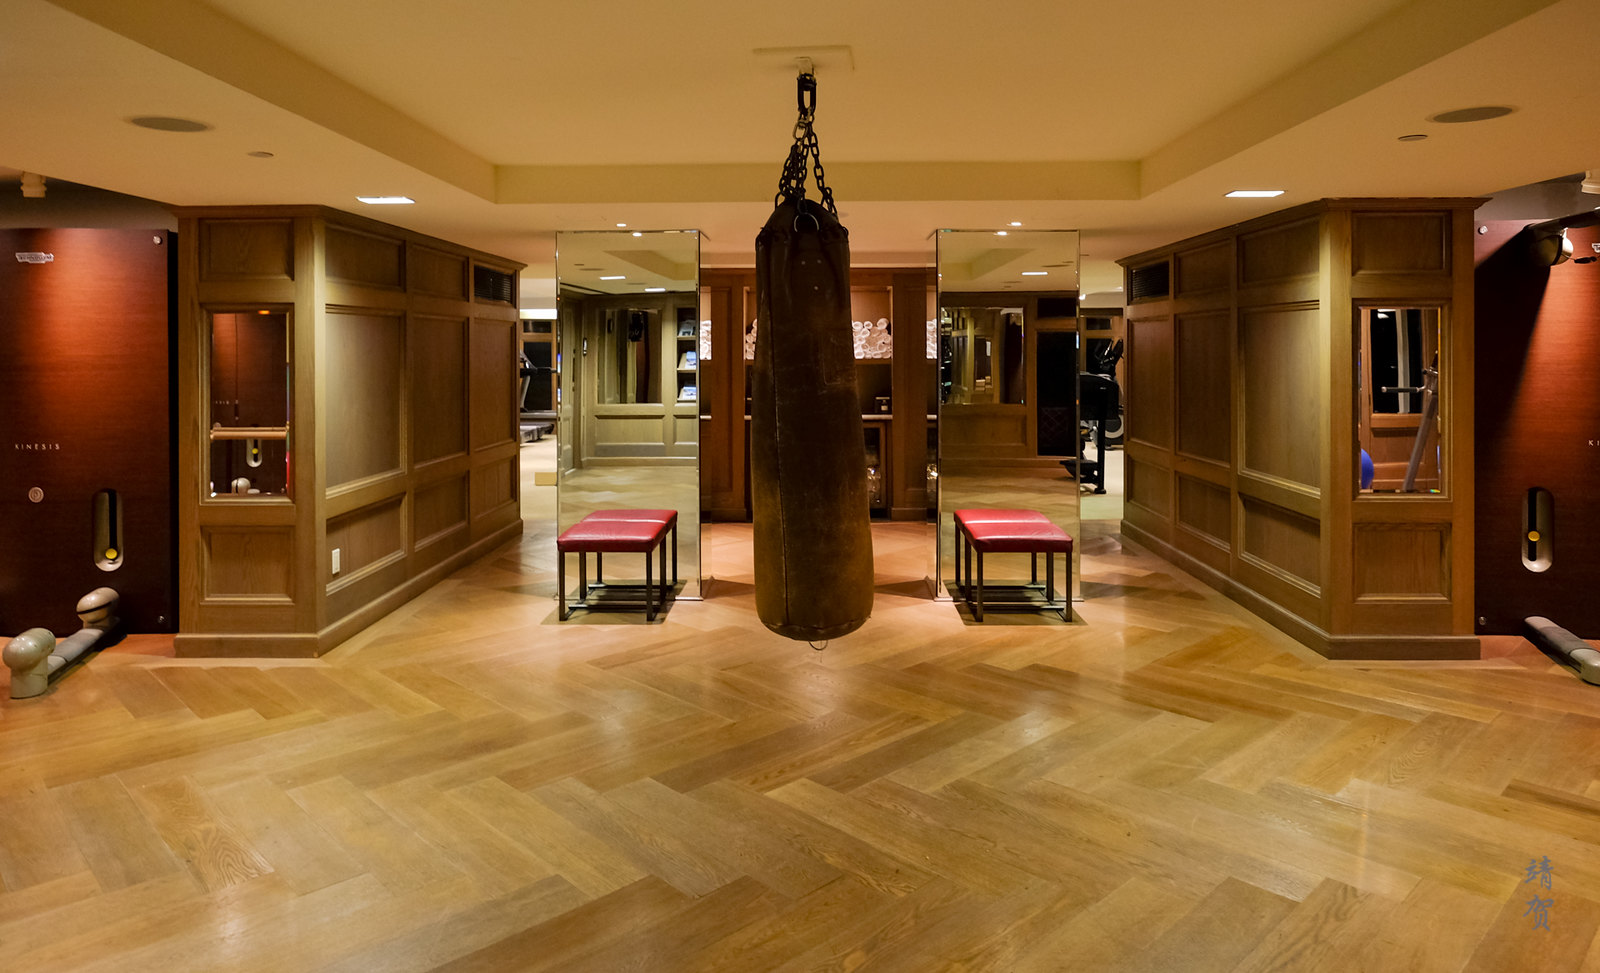 Boxing bag in the foyer